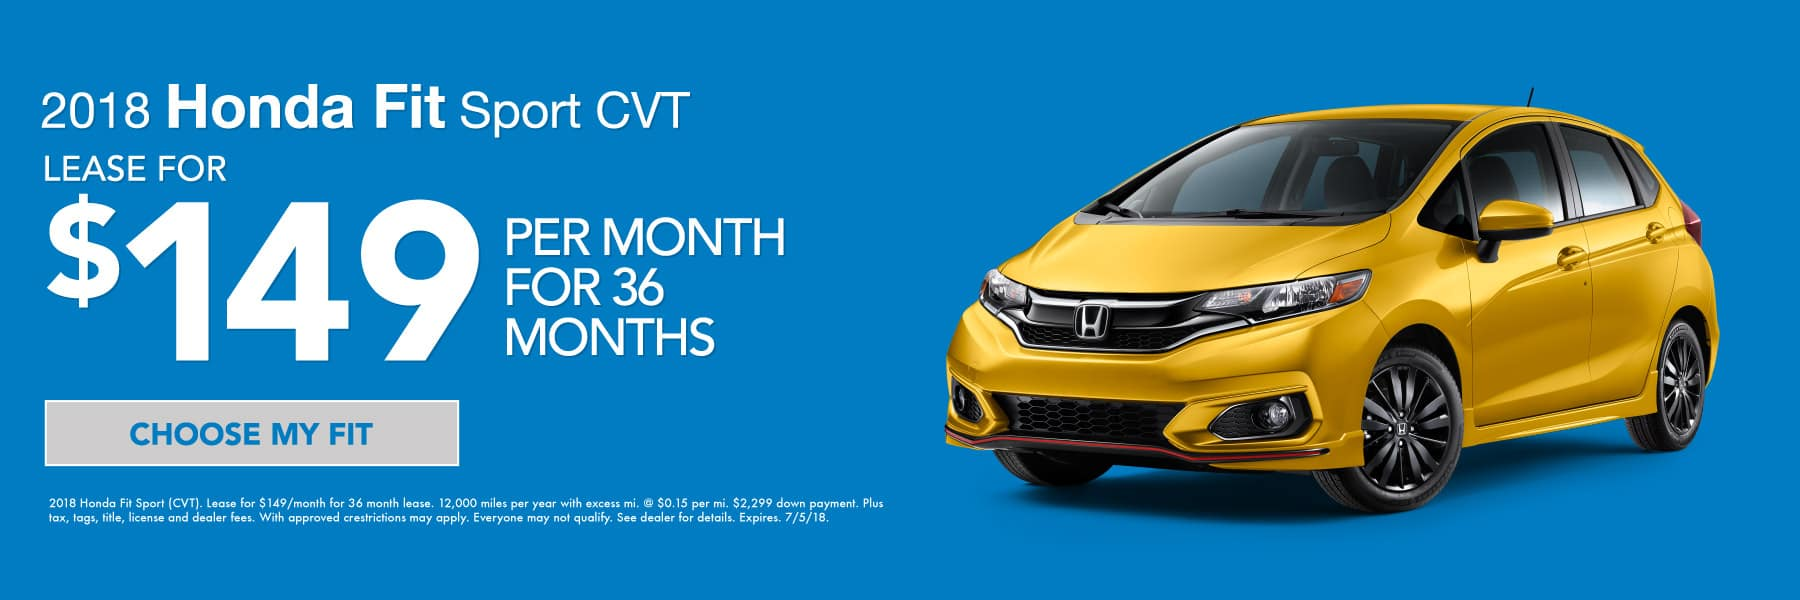 2018 Honda Fit Sport CVT - Lease for $149/month for 36 months - Choose my Fit